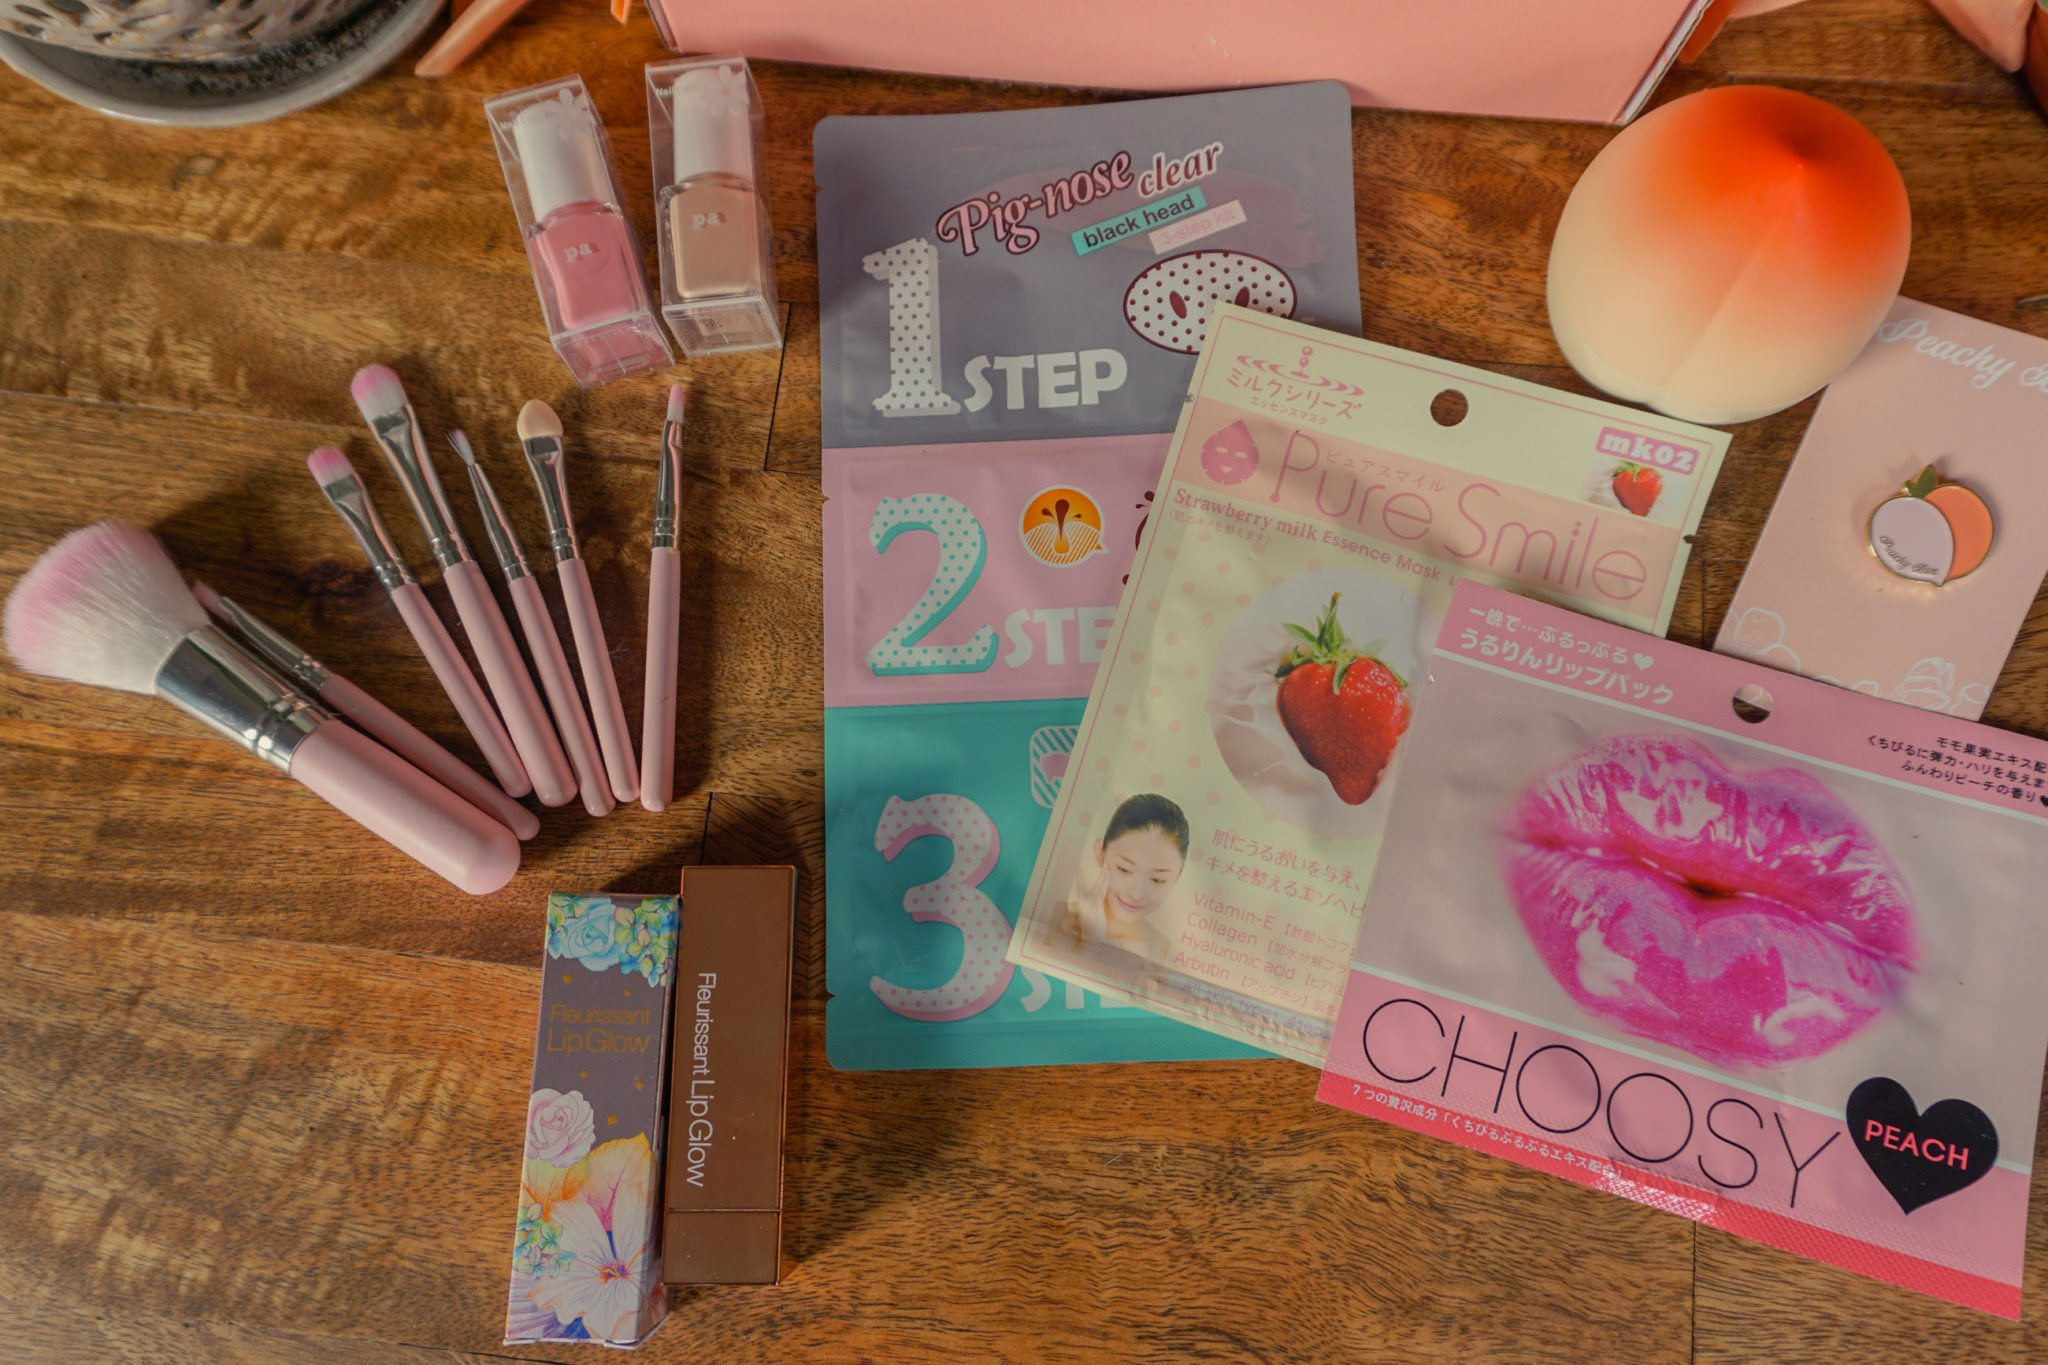 Peachy Box's madian June box filled with beauty products, accessories, stationary and more